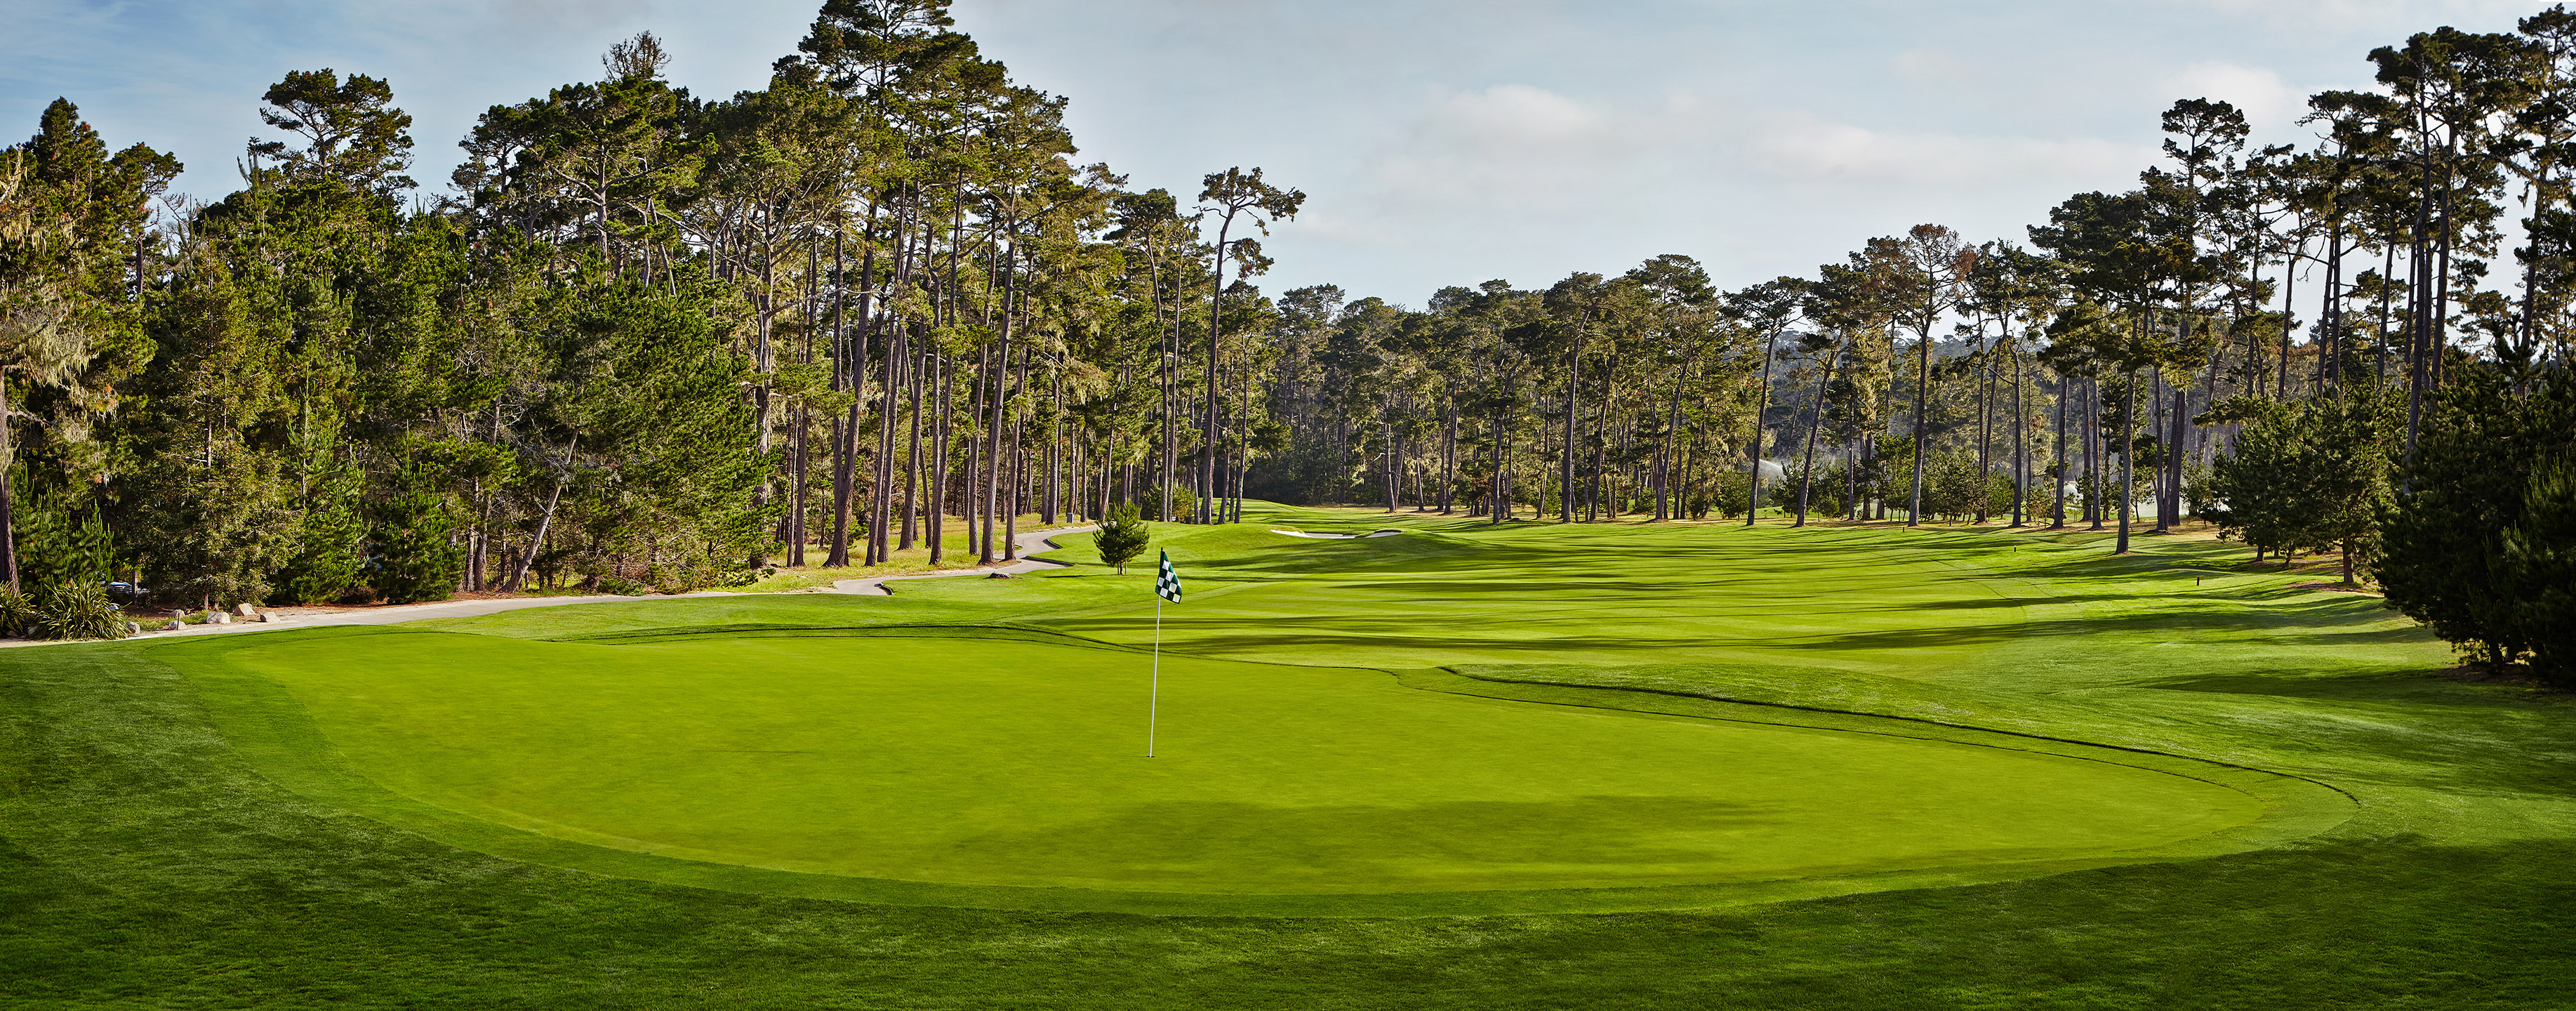 Spyglass_9th_green_01